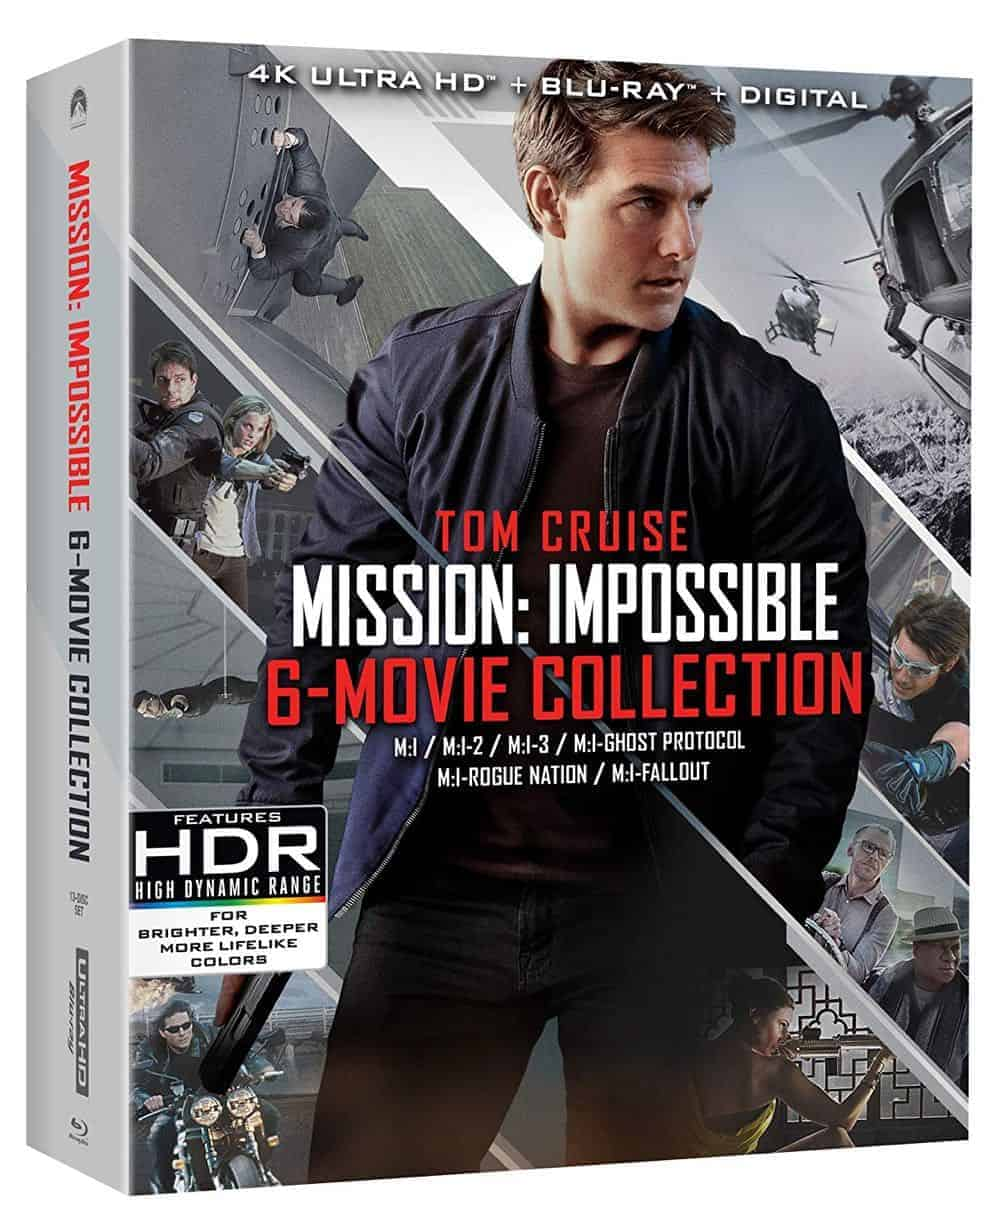 Mission Impossible 6 Film 4k Collection